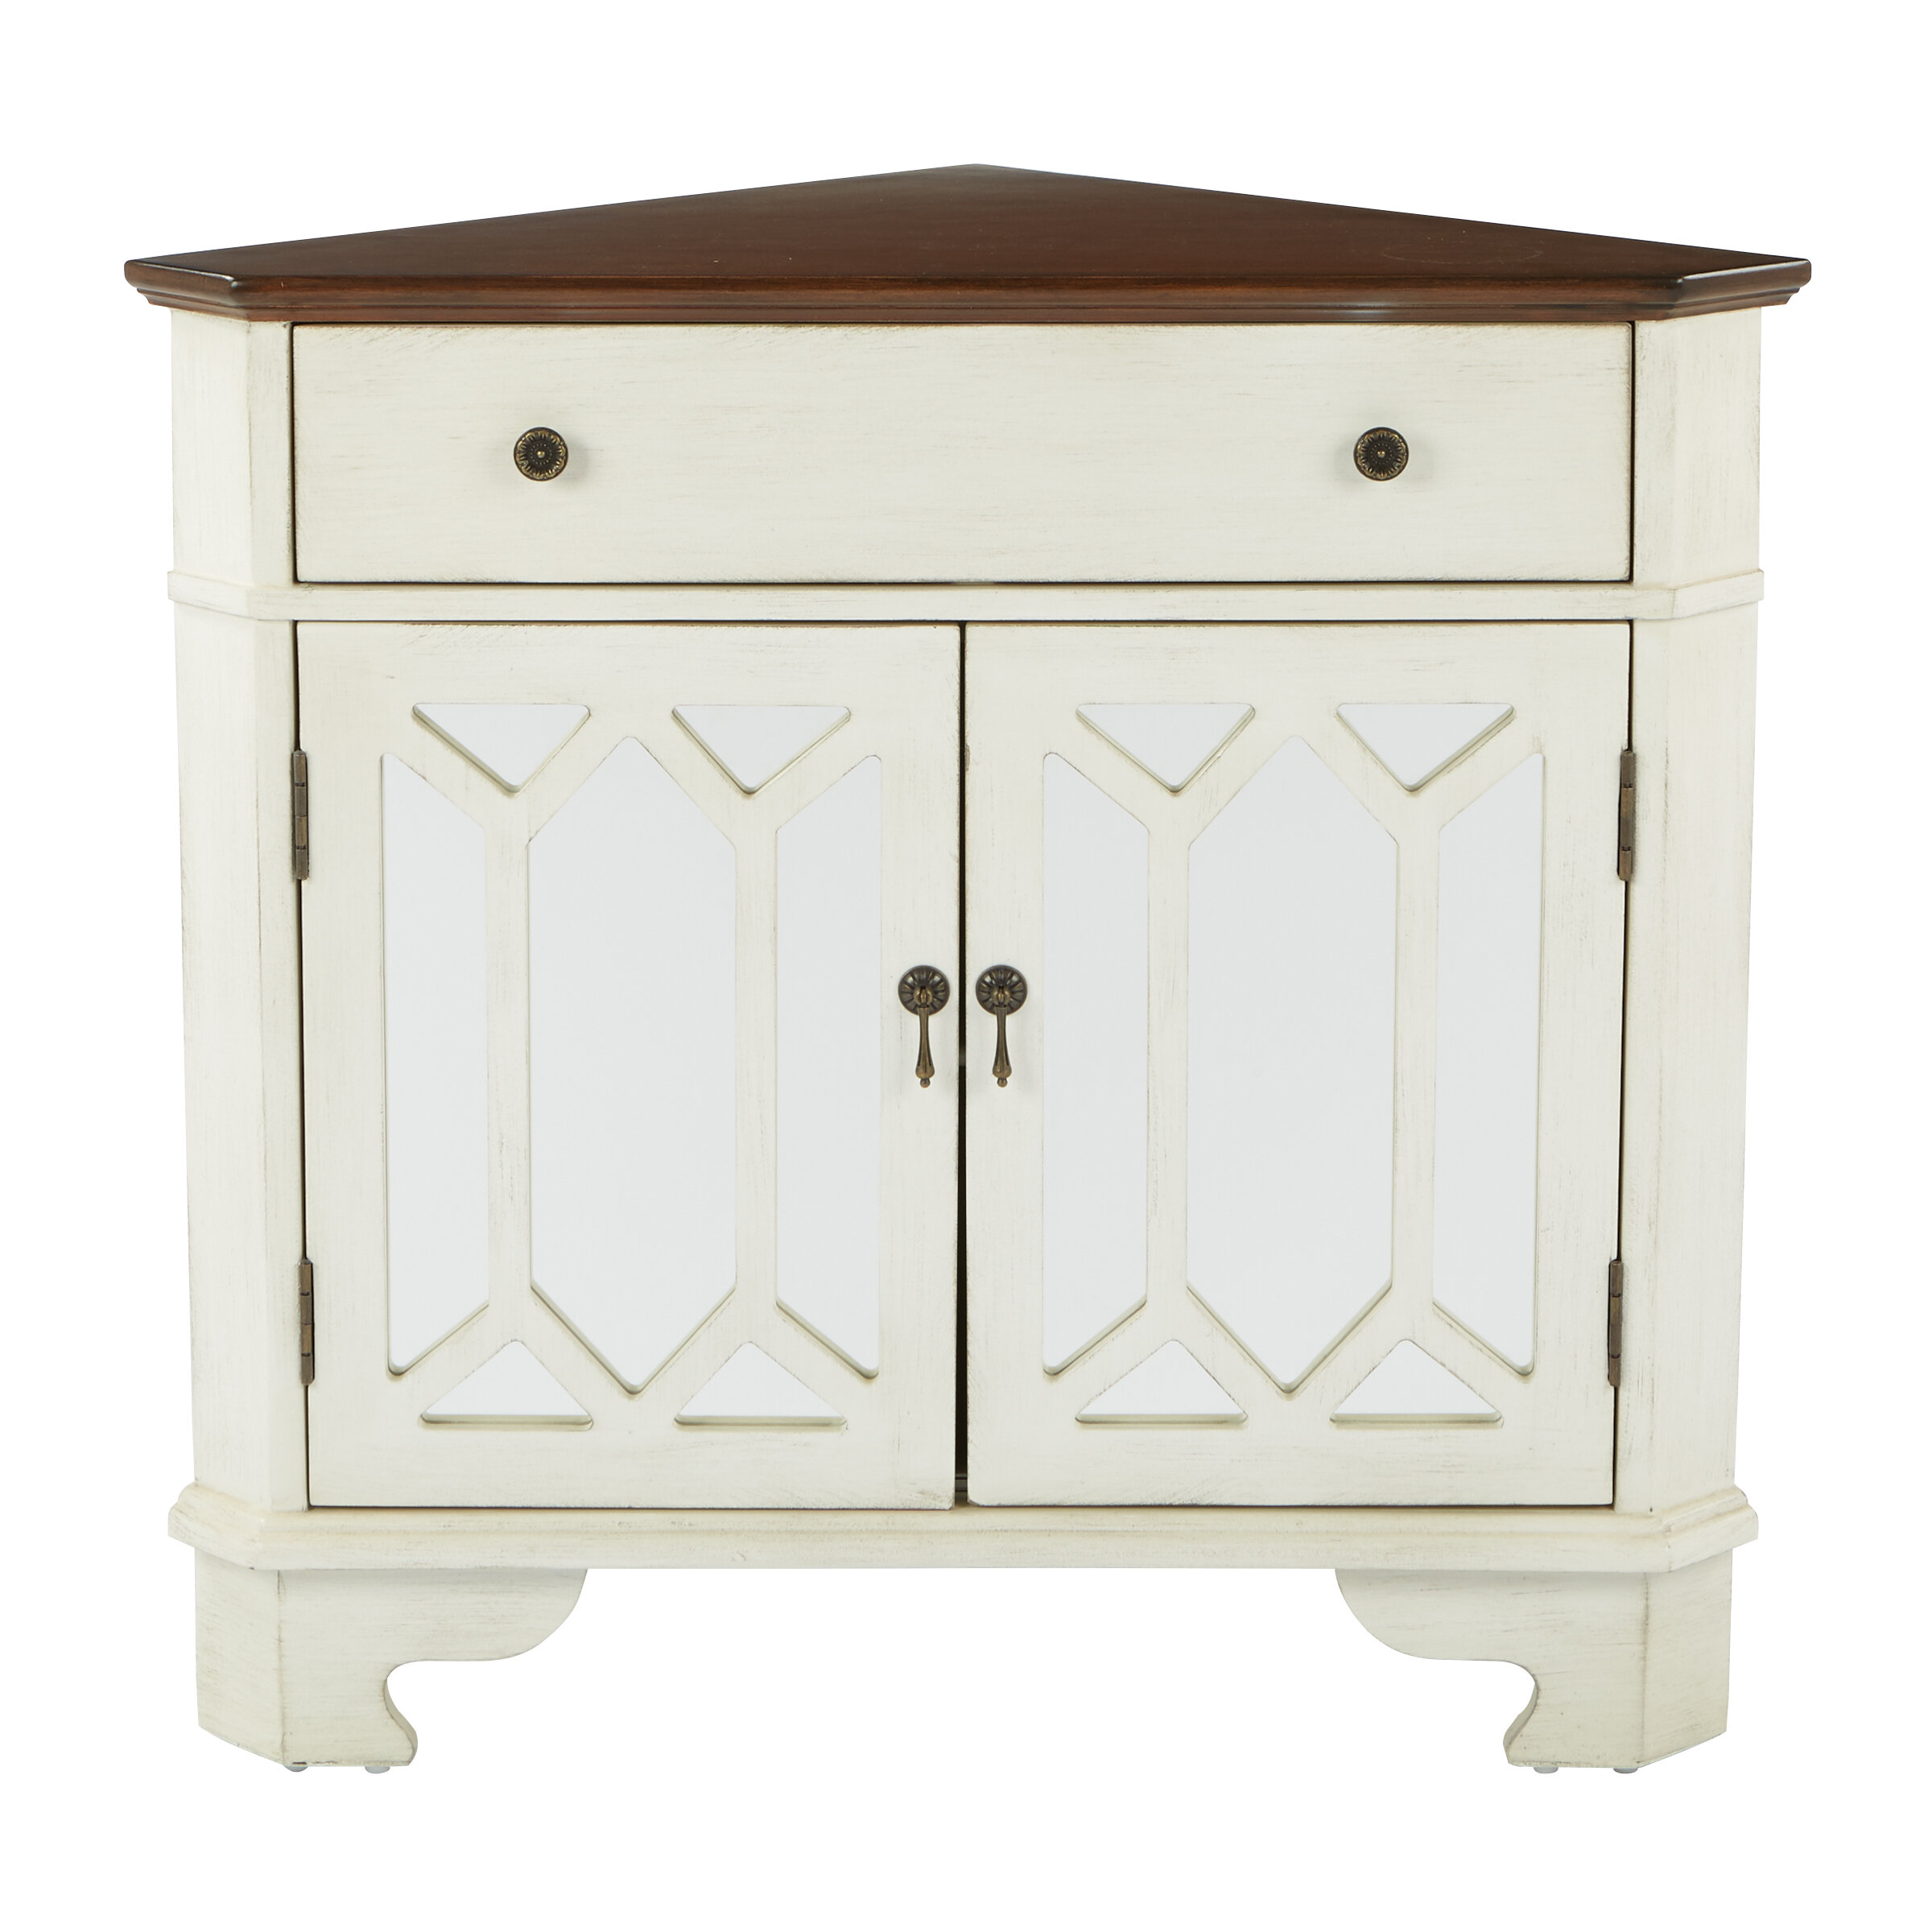 Exceptionnel August Grove Hardyston Corner Storage 1 Drawer 2 Door Accent Cabinet U0026  Reviews | Wayfair